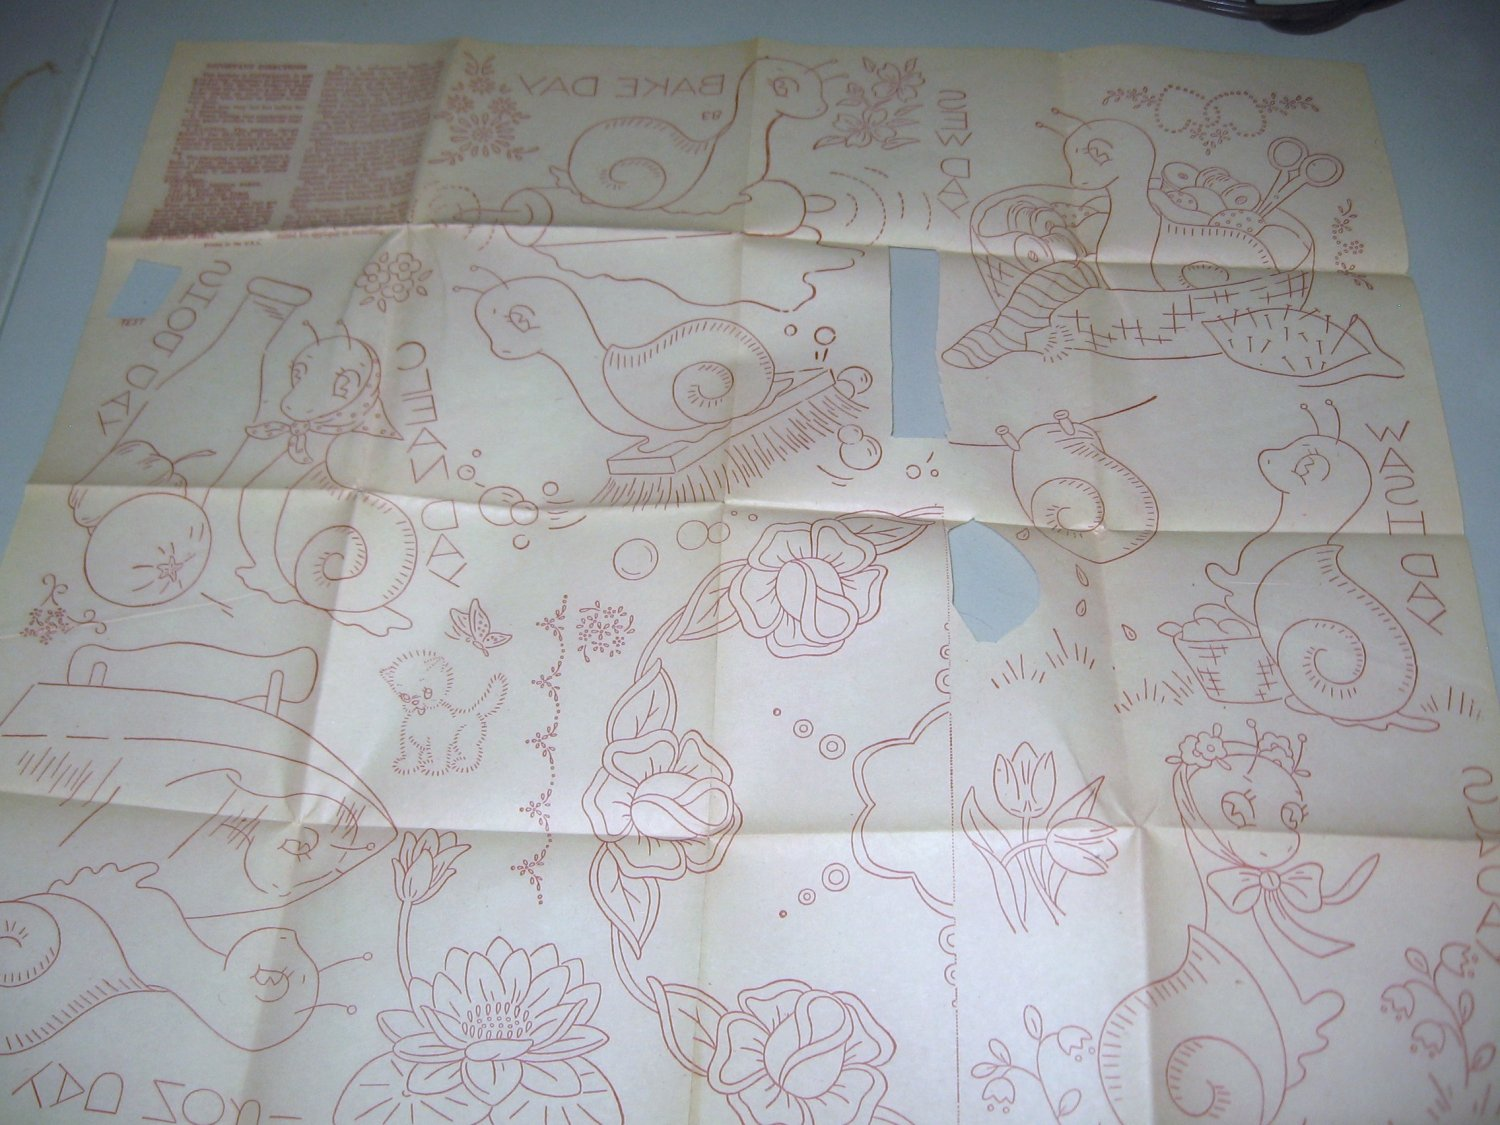 Days of Week Snail Hot Iron Transfer Plus Embroidery Designs